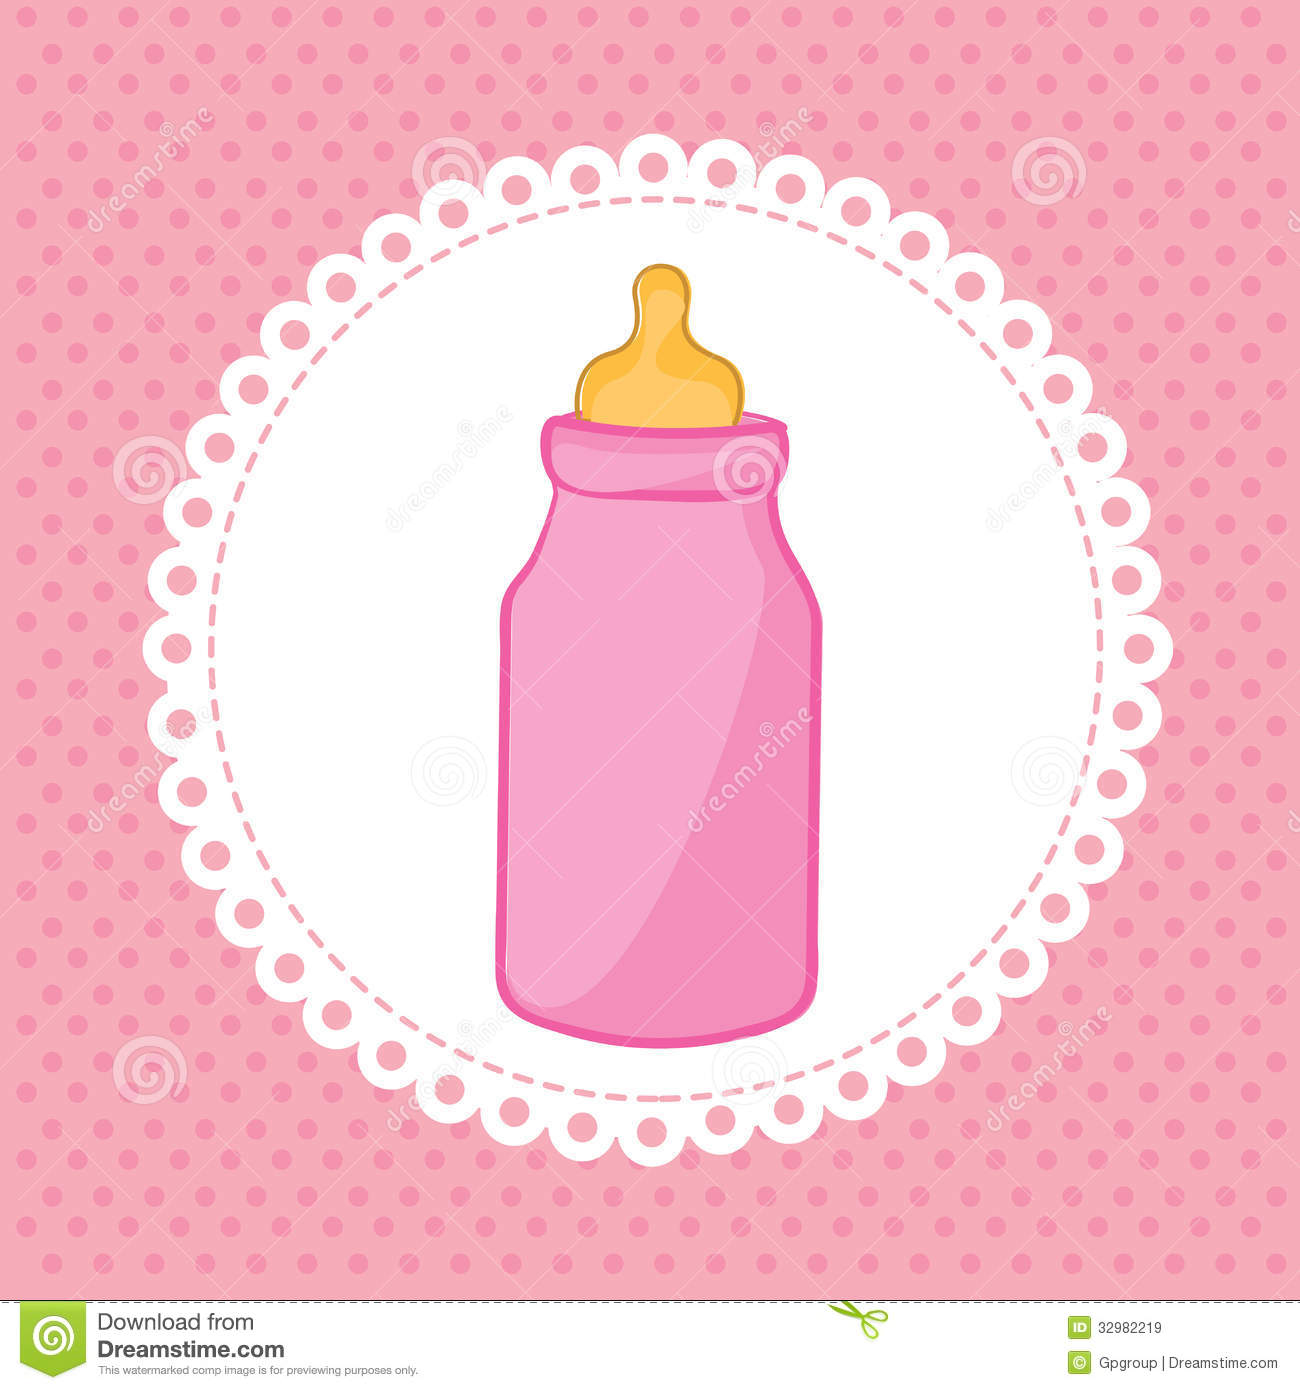 Pink Baby Bottle Clipart - Clipart Suggest